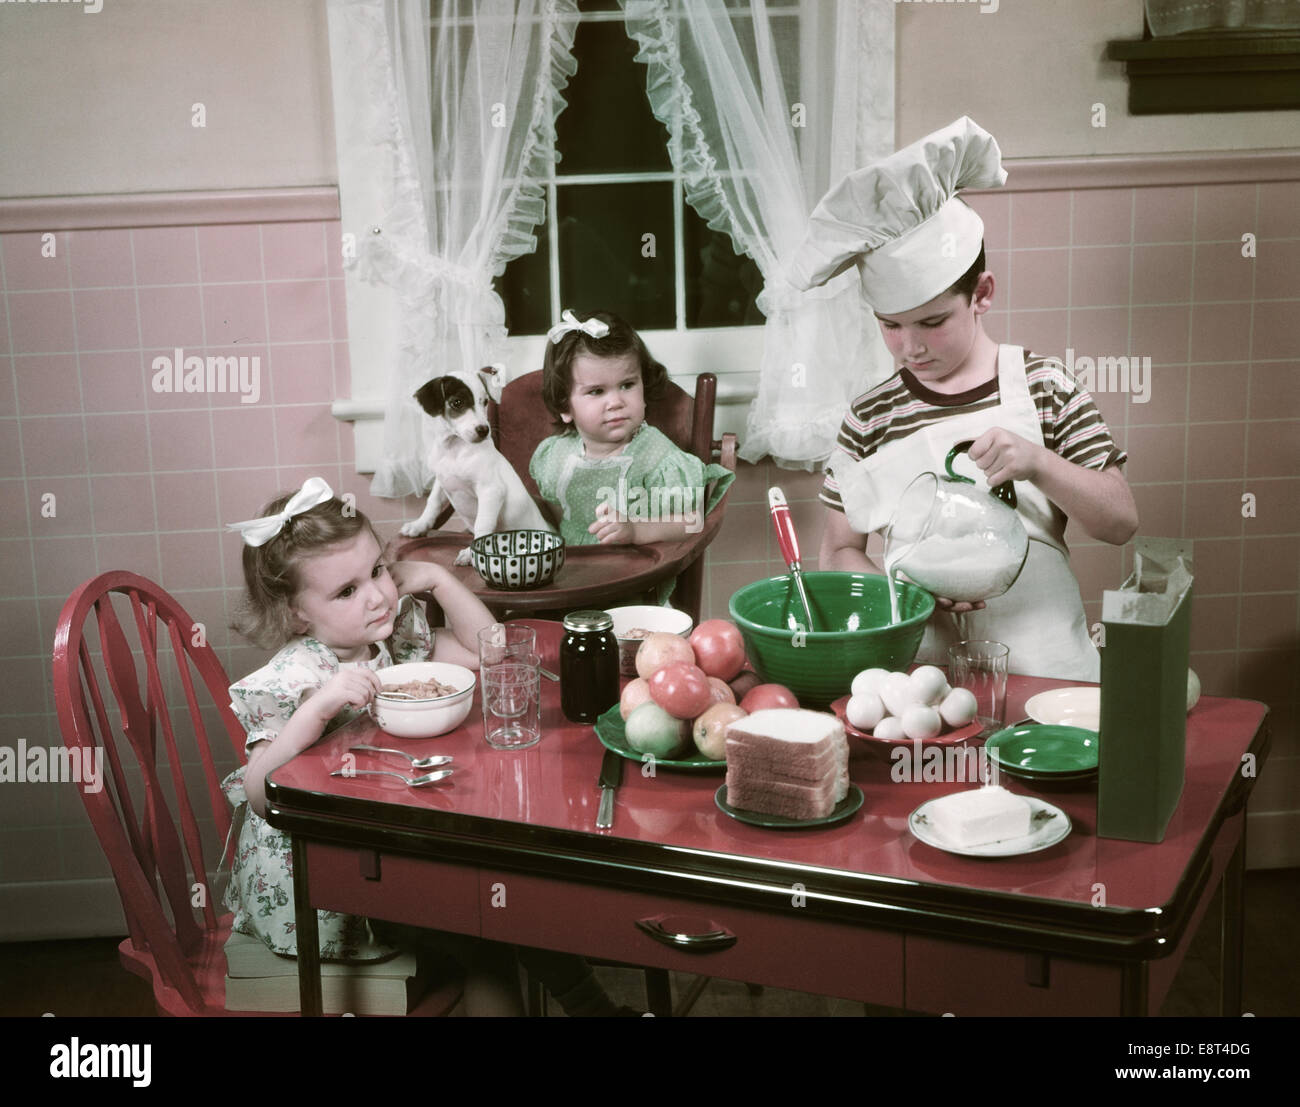 1940s 1950s children two girls at kitchen table with puppy and boy E8T4DG